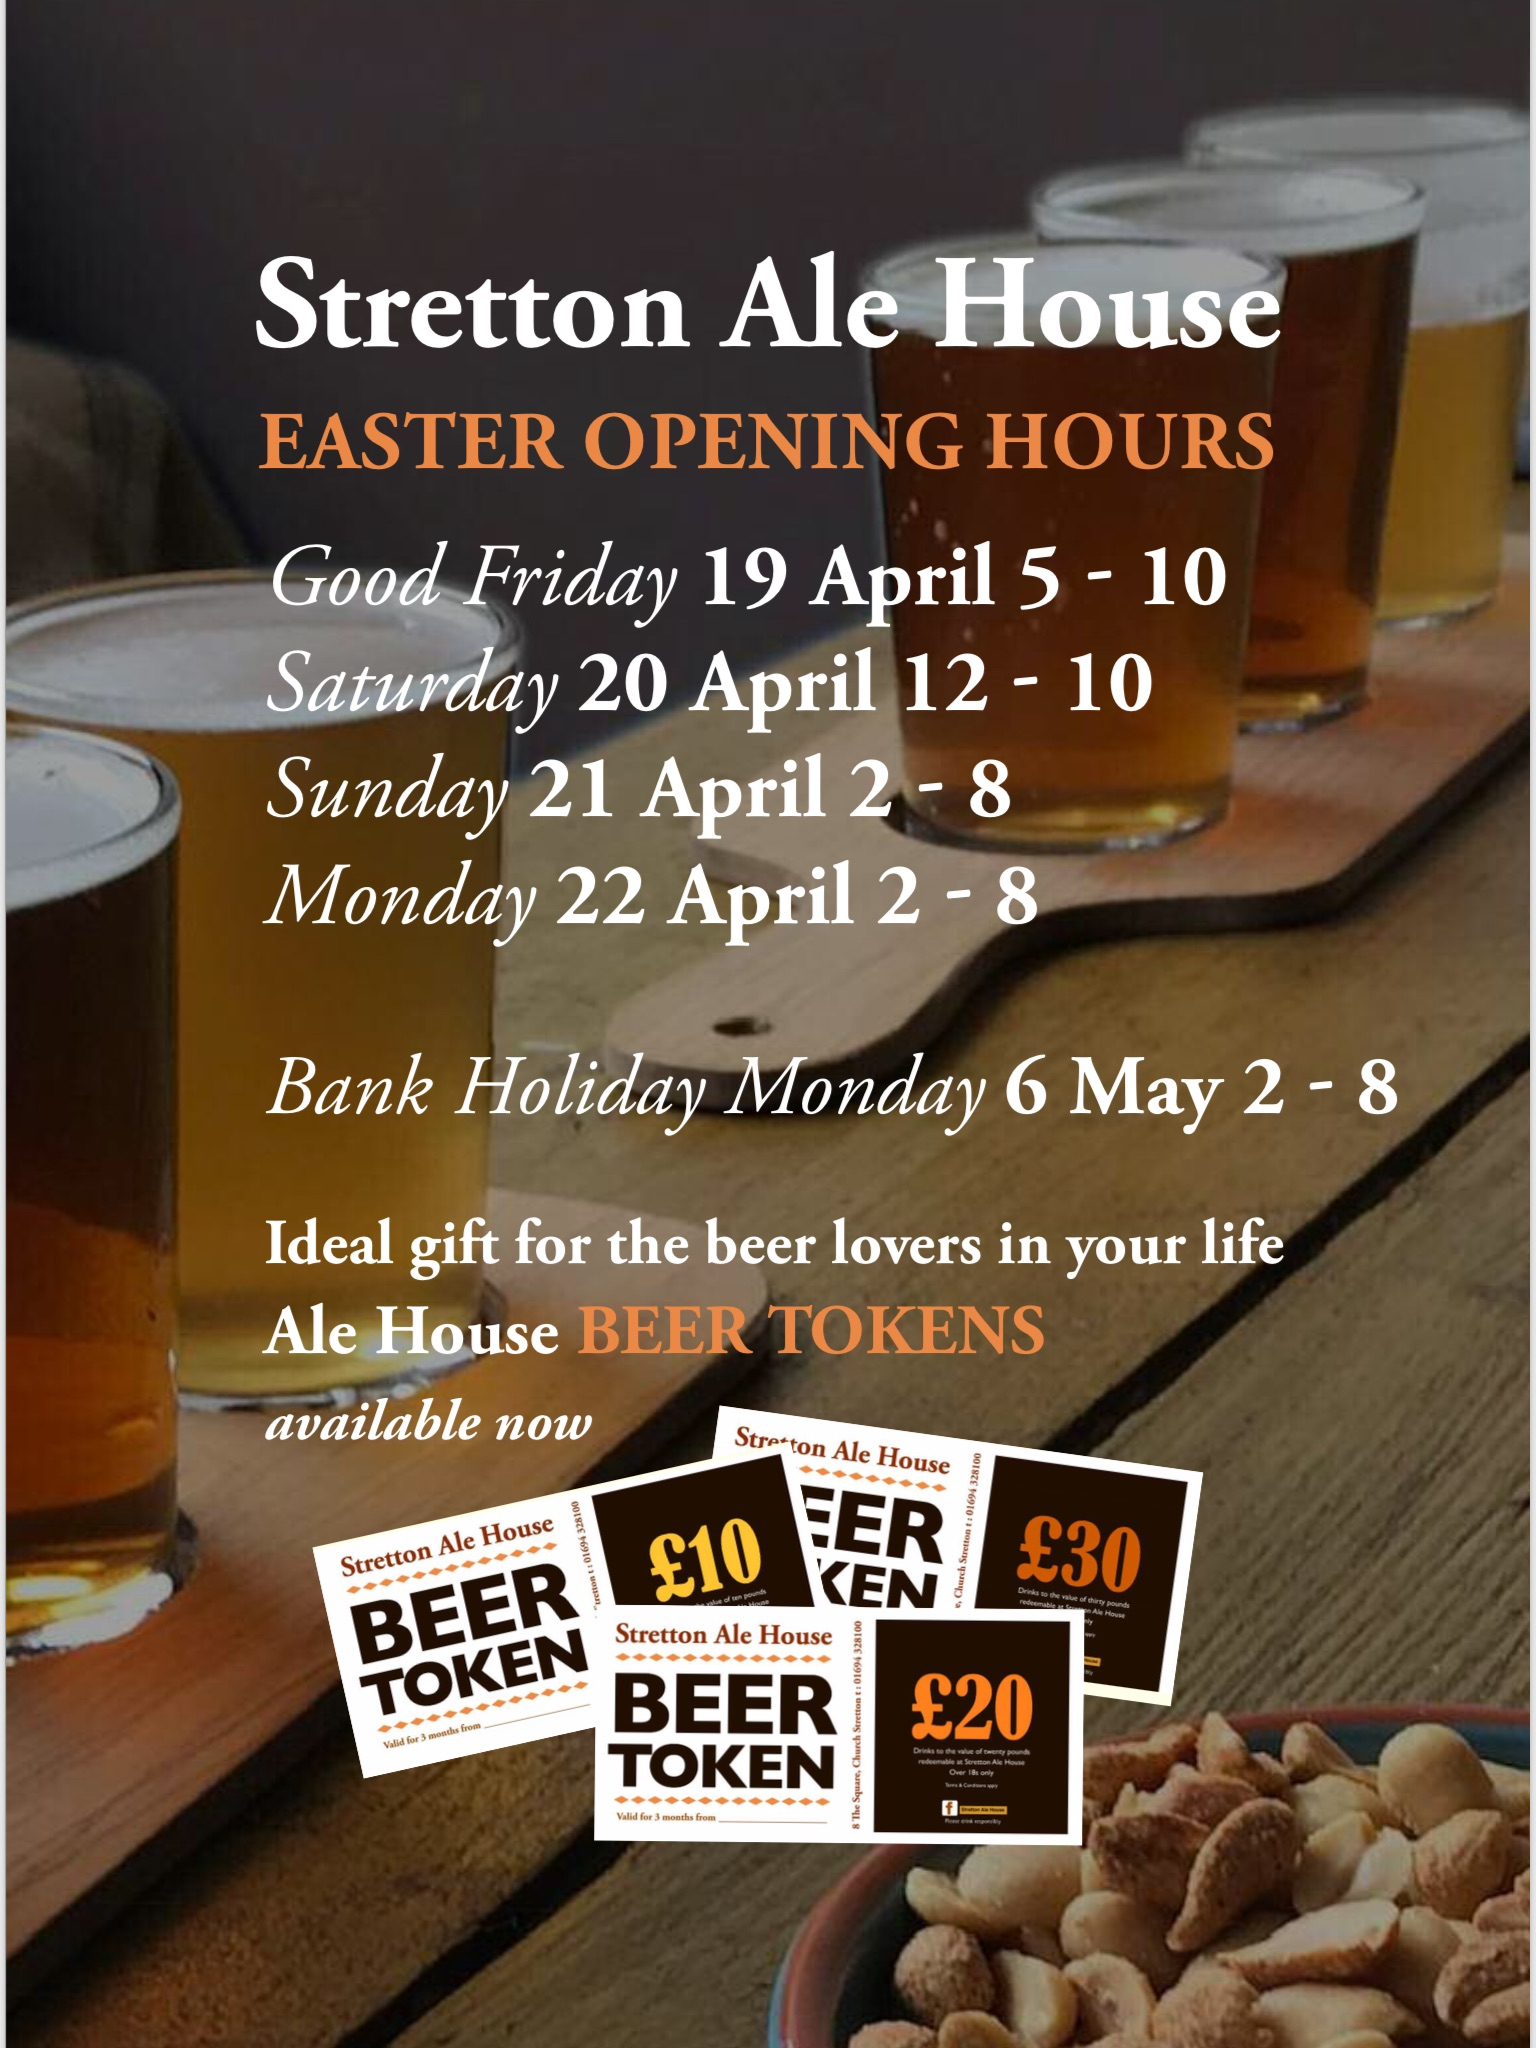 Stretton Ale House - Church Stretton, Shropshire SY6 6DA - 07766 727763 | ShowMeLocal.com